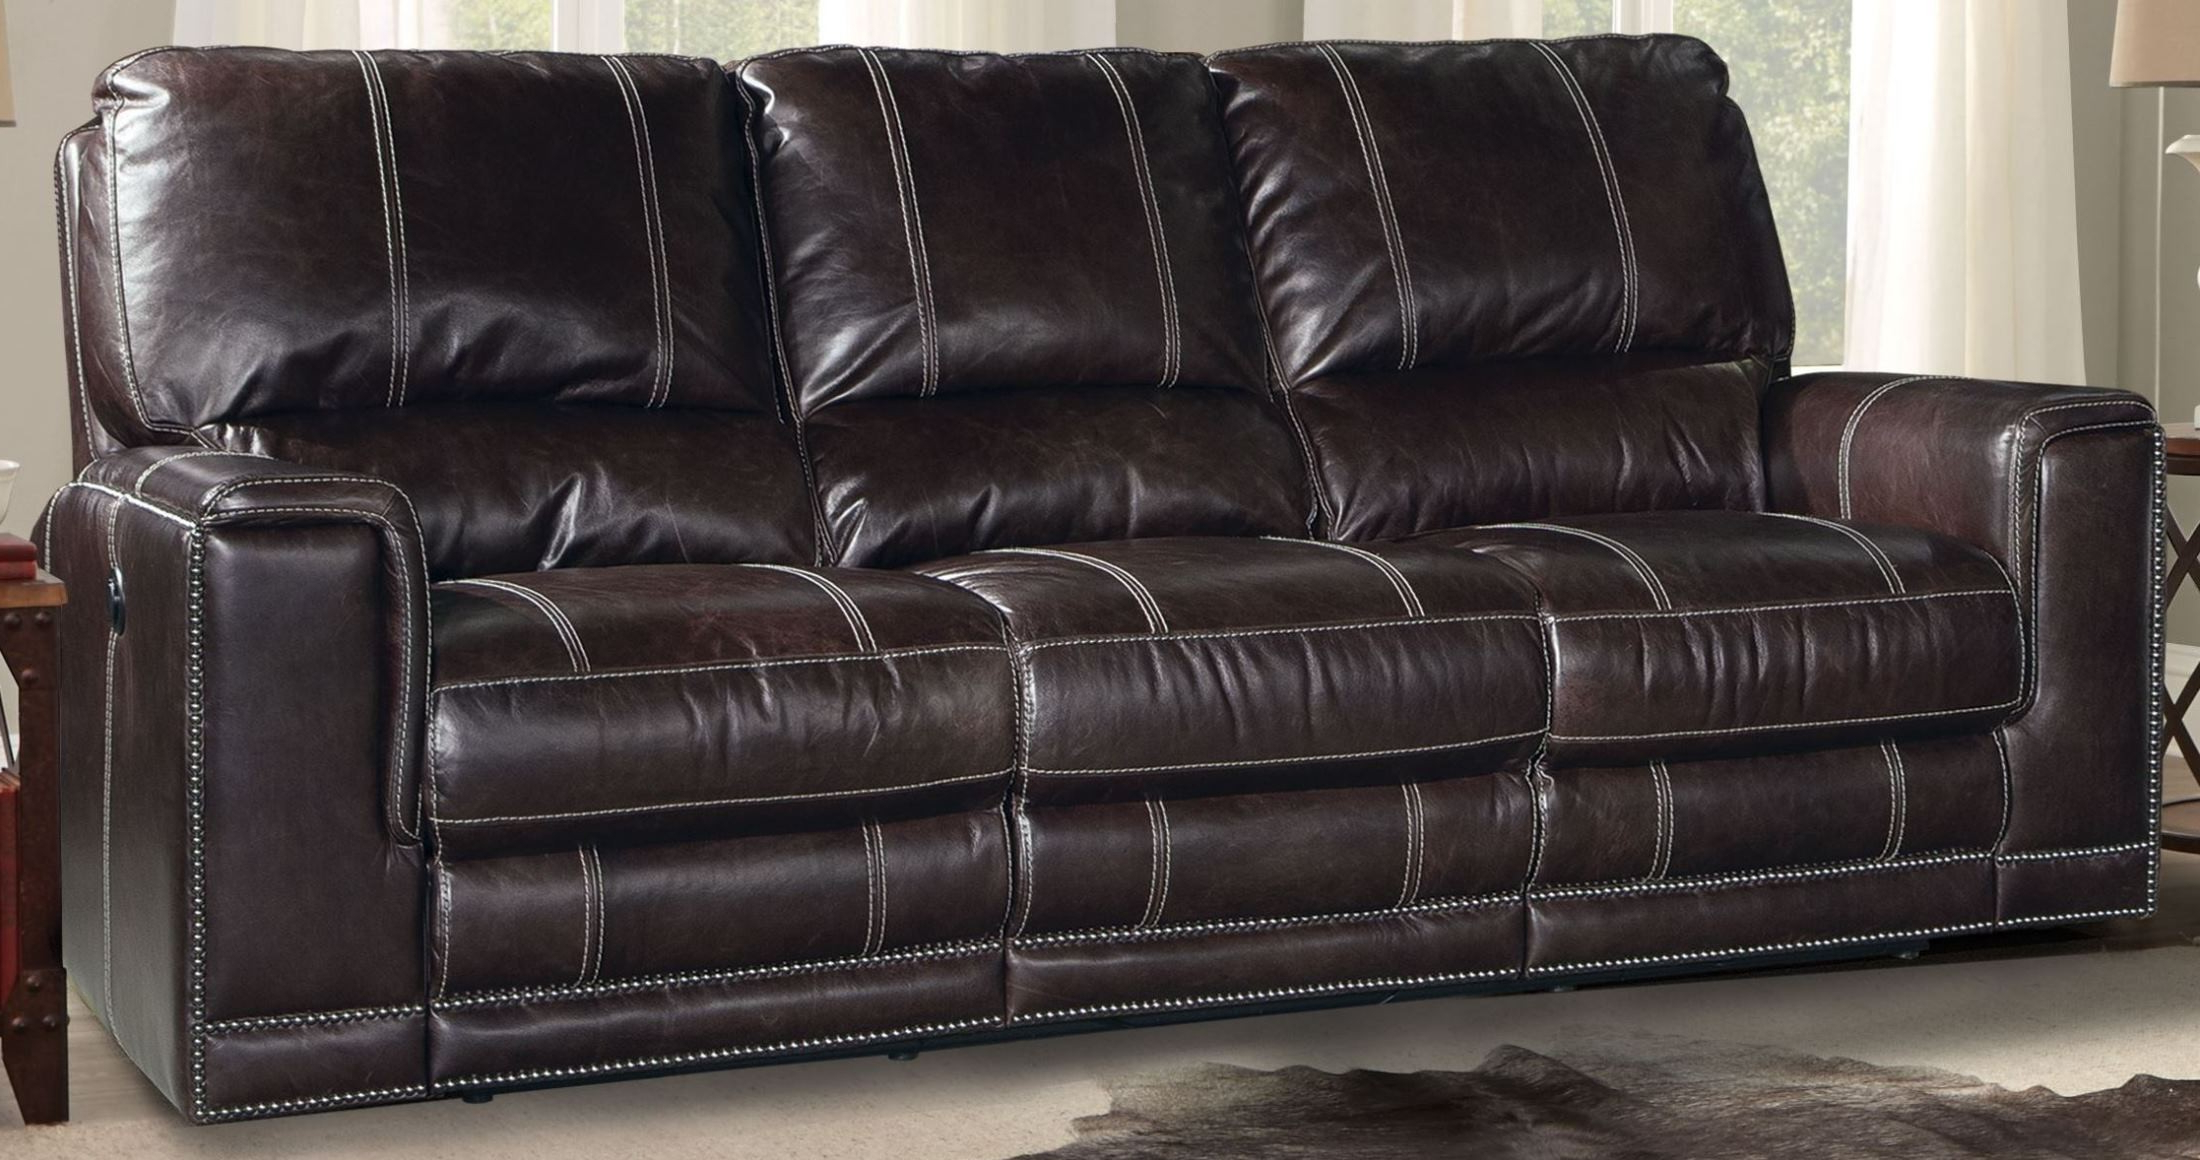 Dual Power Reclining Sofas Throughout Favorite Salinger Sangria Dual Power Reclining Sofa From Parker (View 7 of 20)